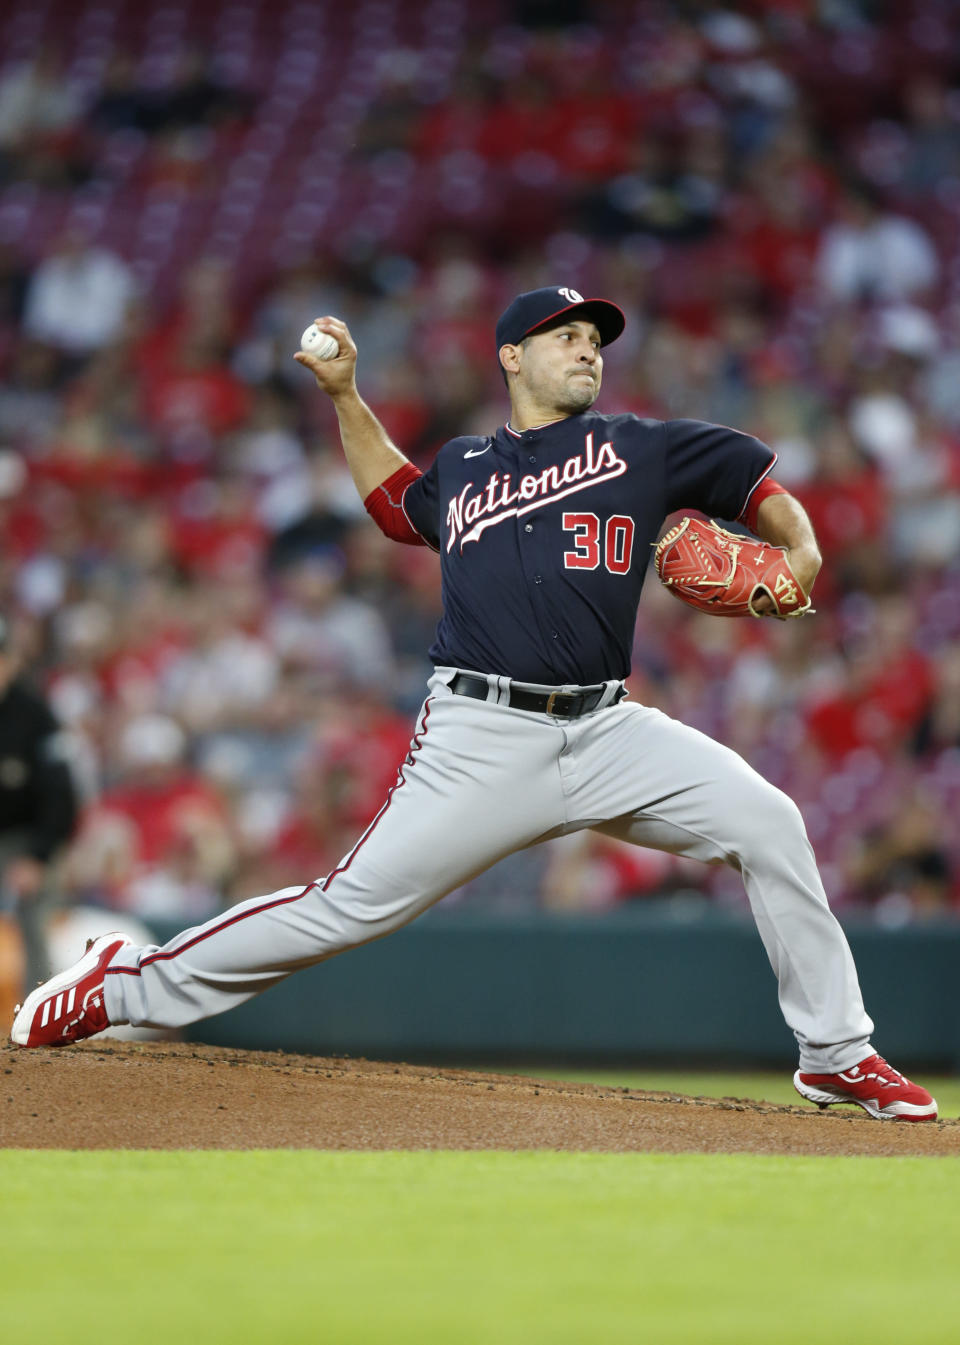 Washington Nationals pitcher Paolo Espino delivers to the Cincinnati Reds during the first inning of an MLB baseball game in Cincinnati, Friday, Sept. 24, 2021. (AP Photo/Paul Vernon)